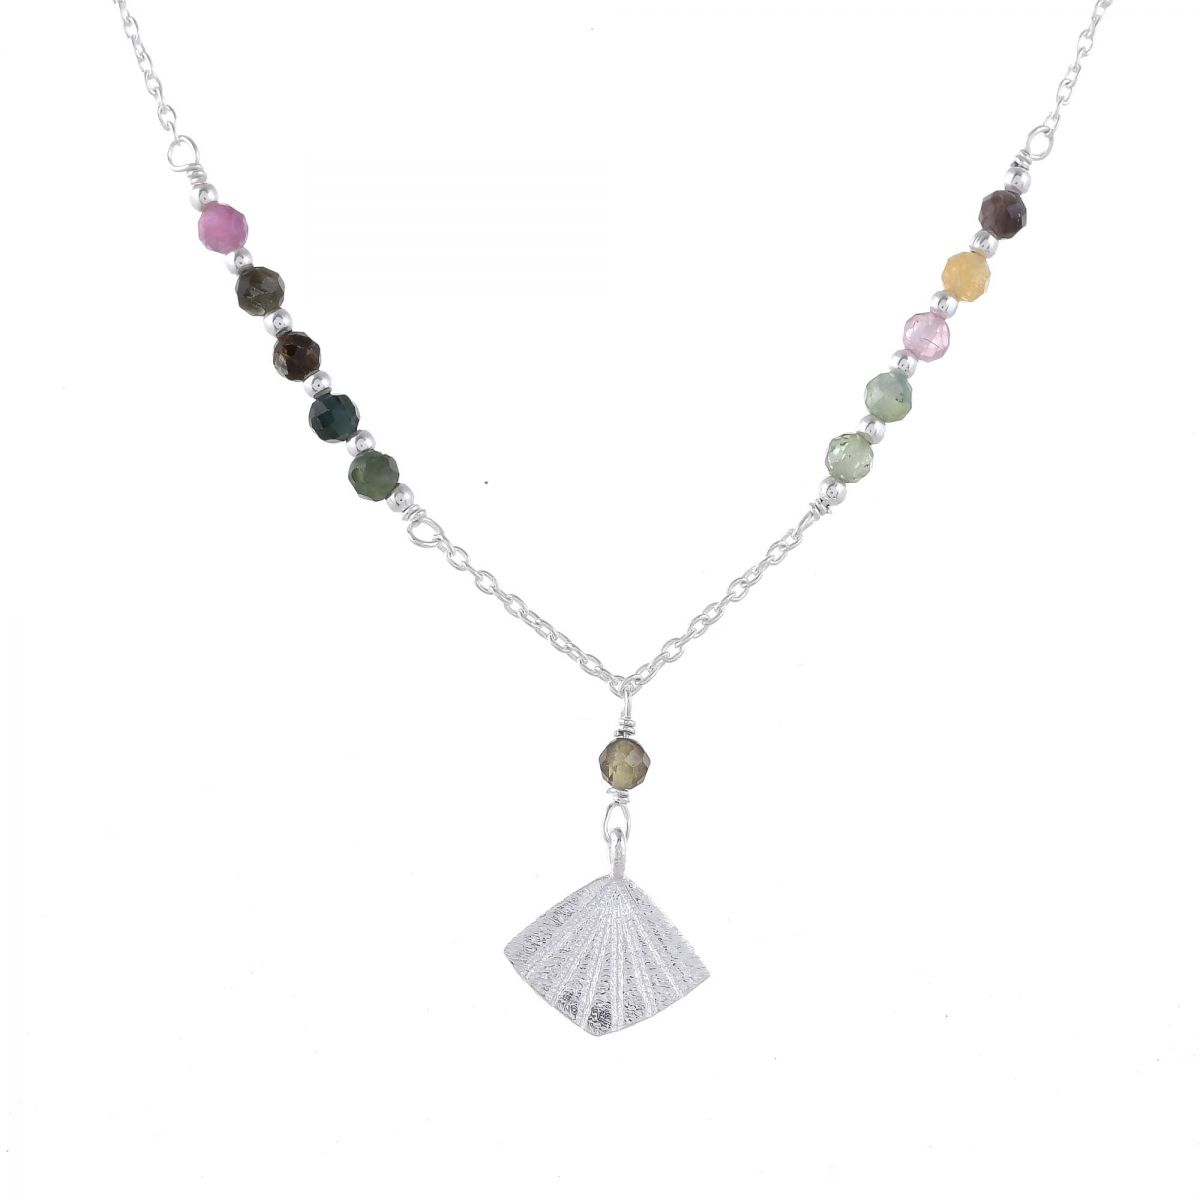 fcollier tourmaline beads with flabellete